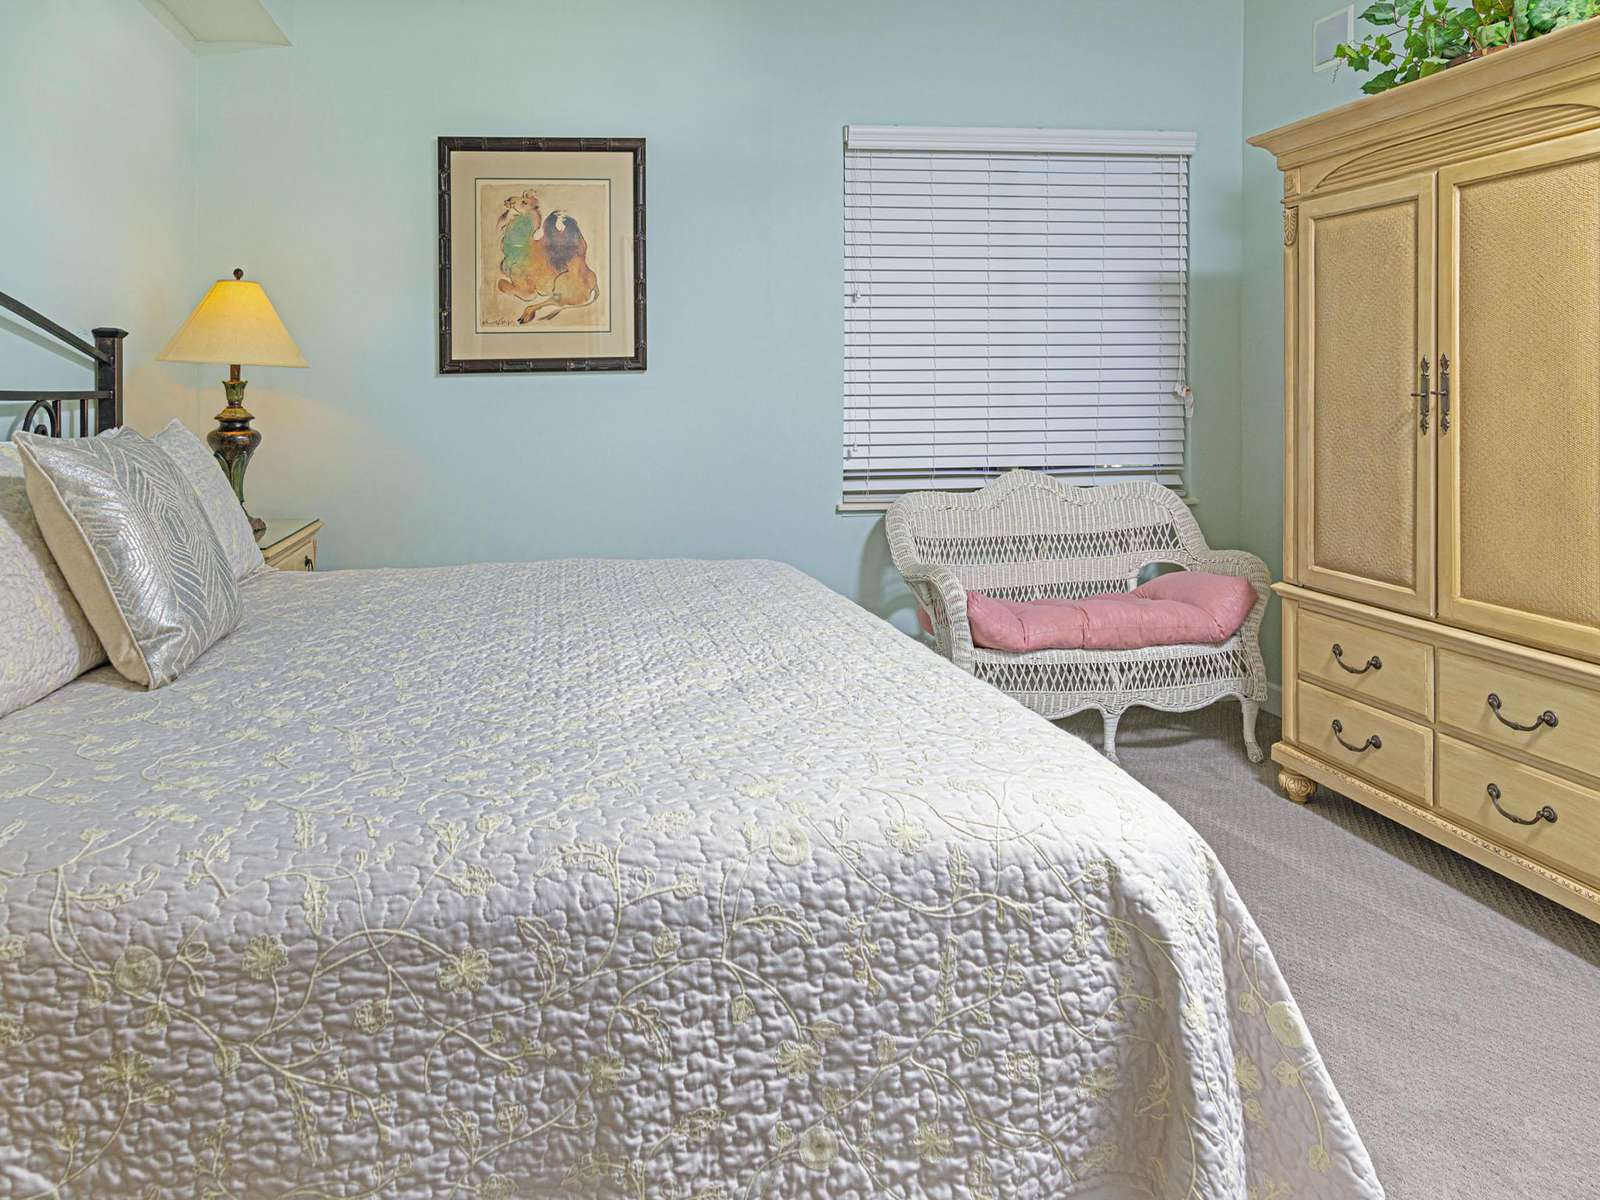 The second ensuite bedroom also has a king bed!